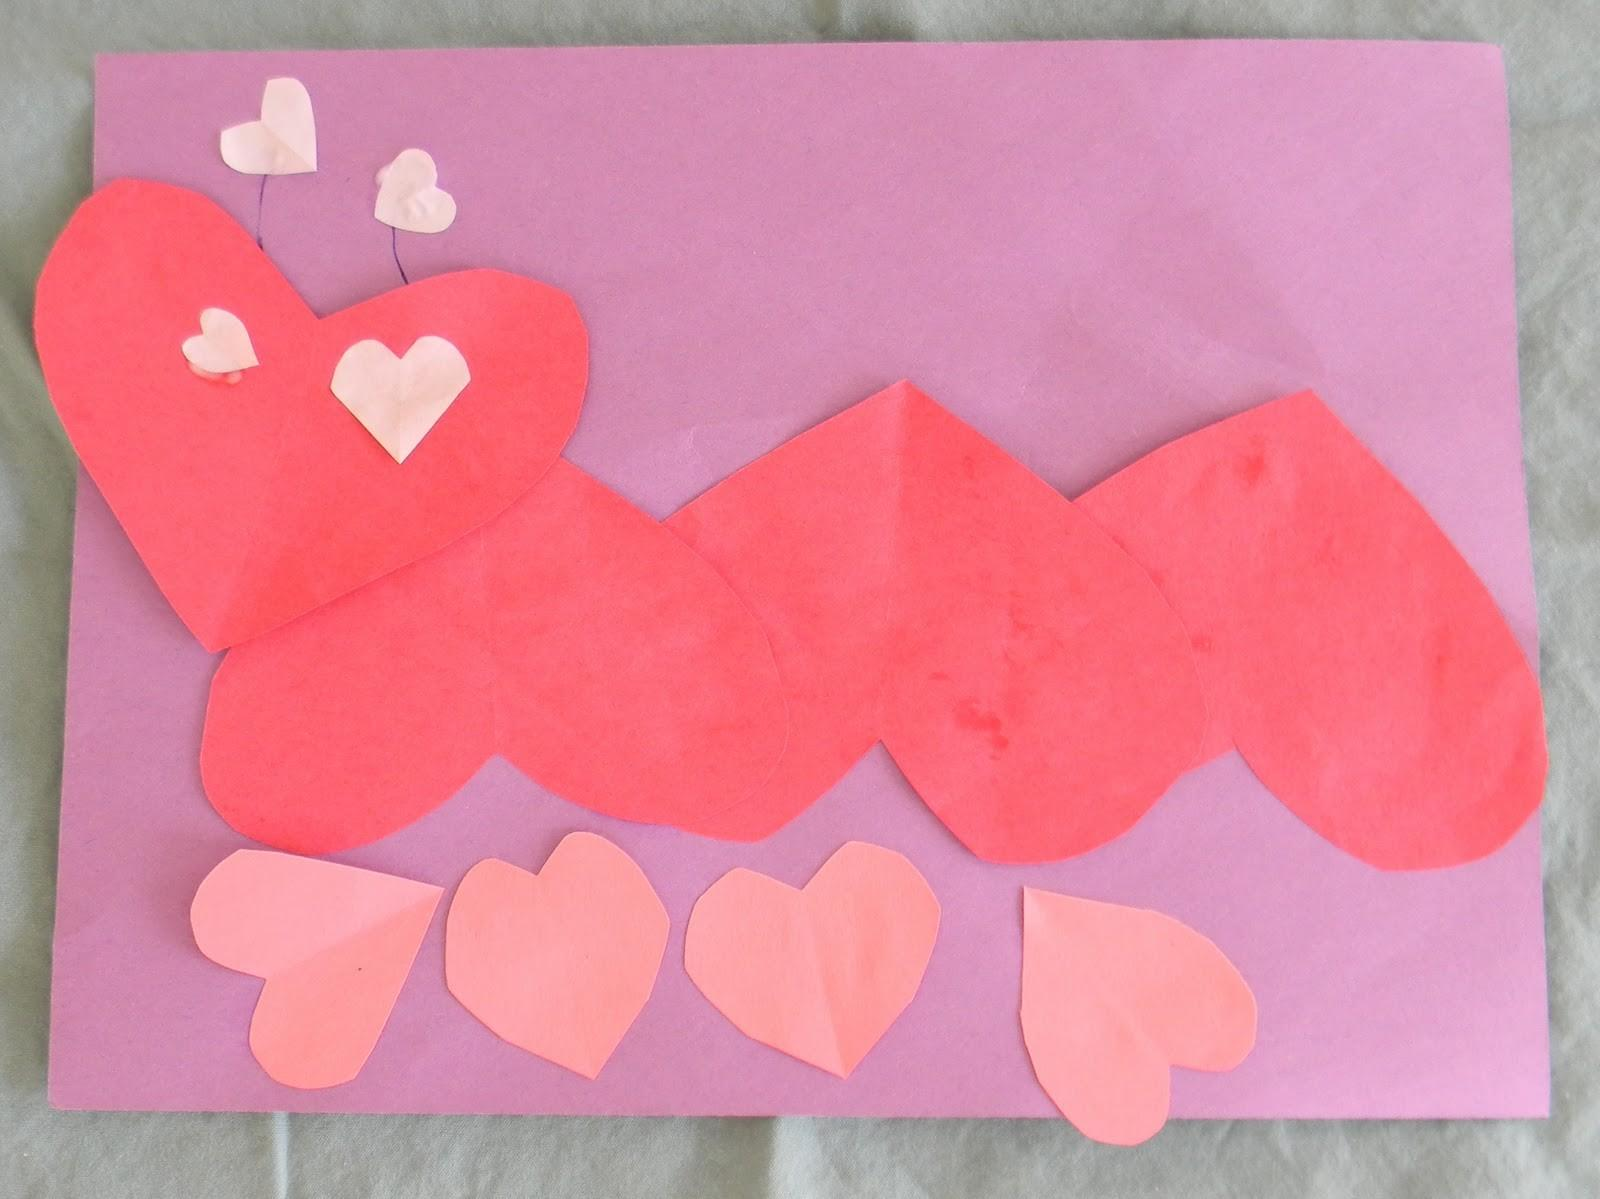 Preschool Crafts Kids Valentine Day Heart